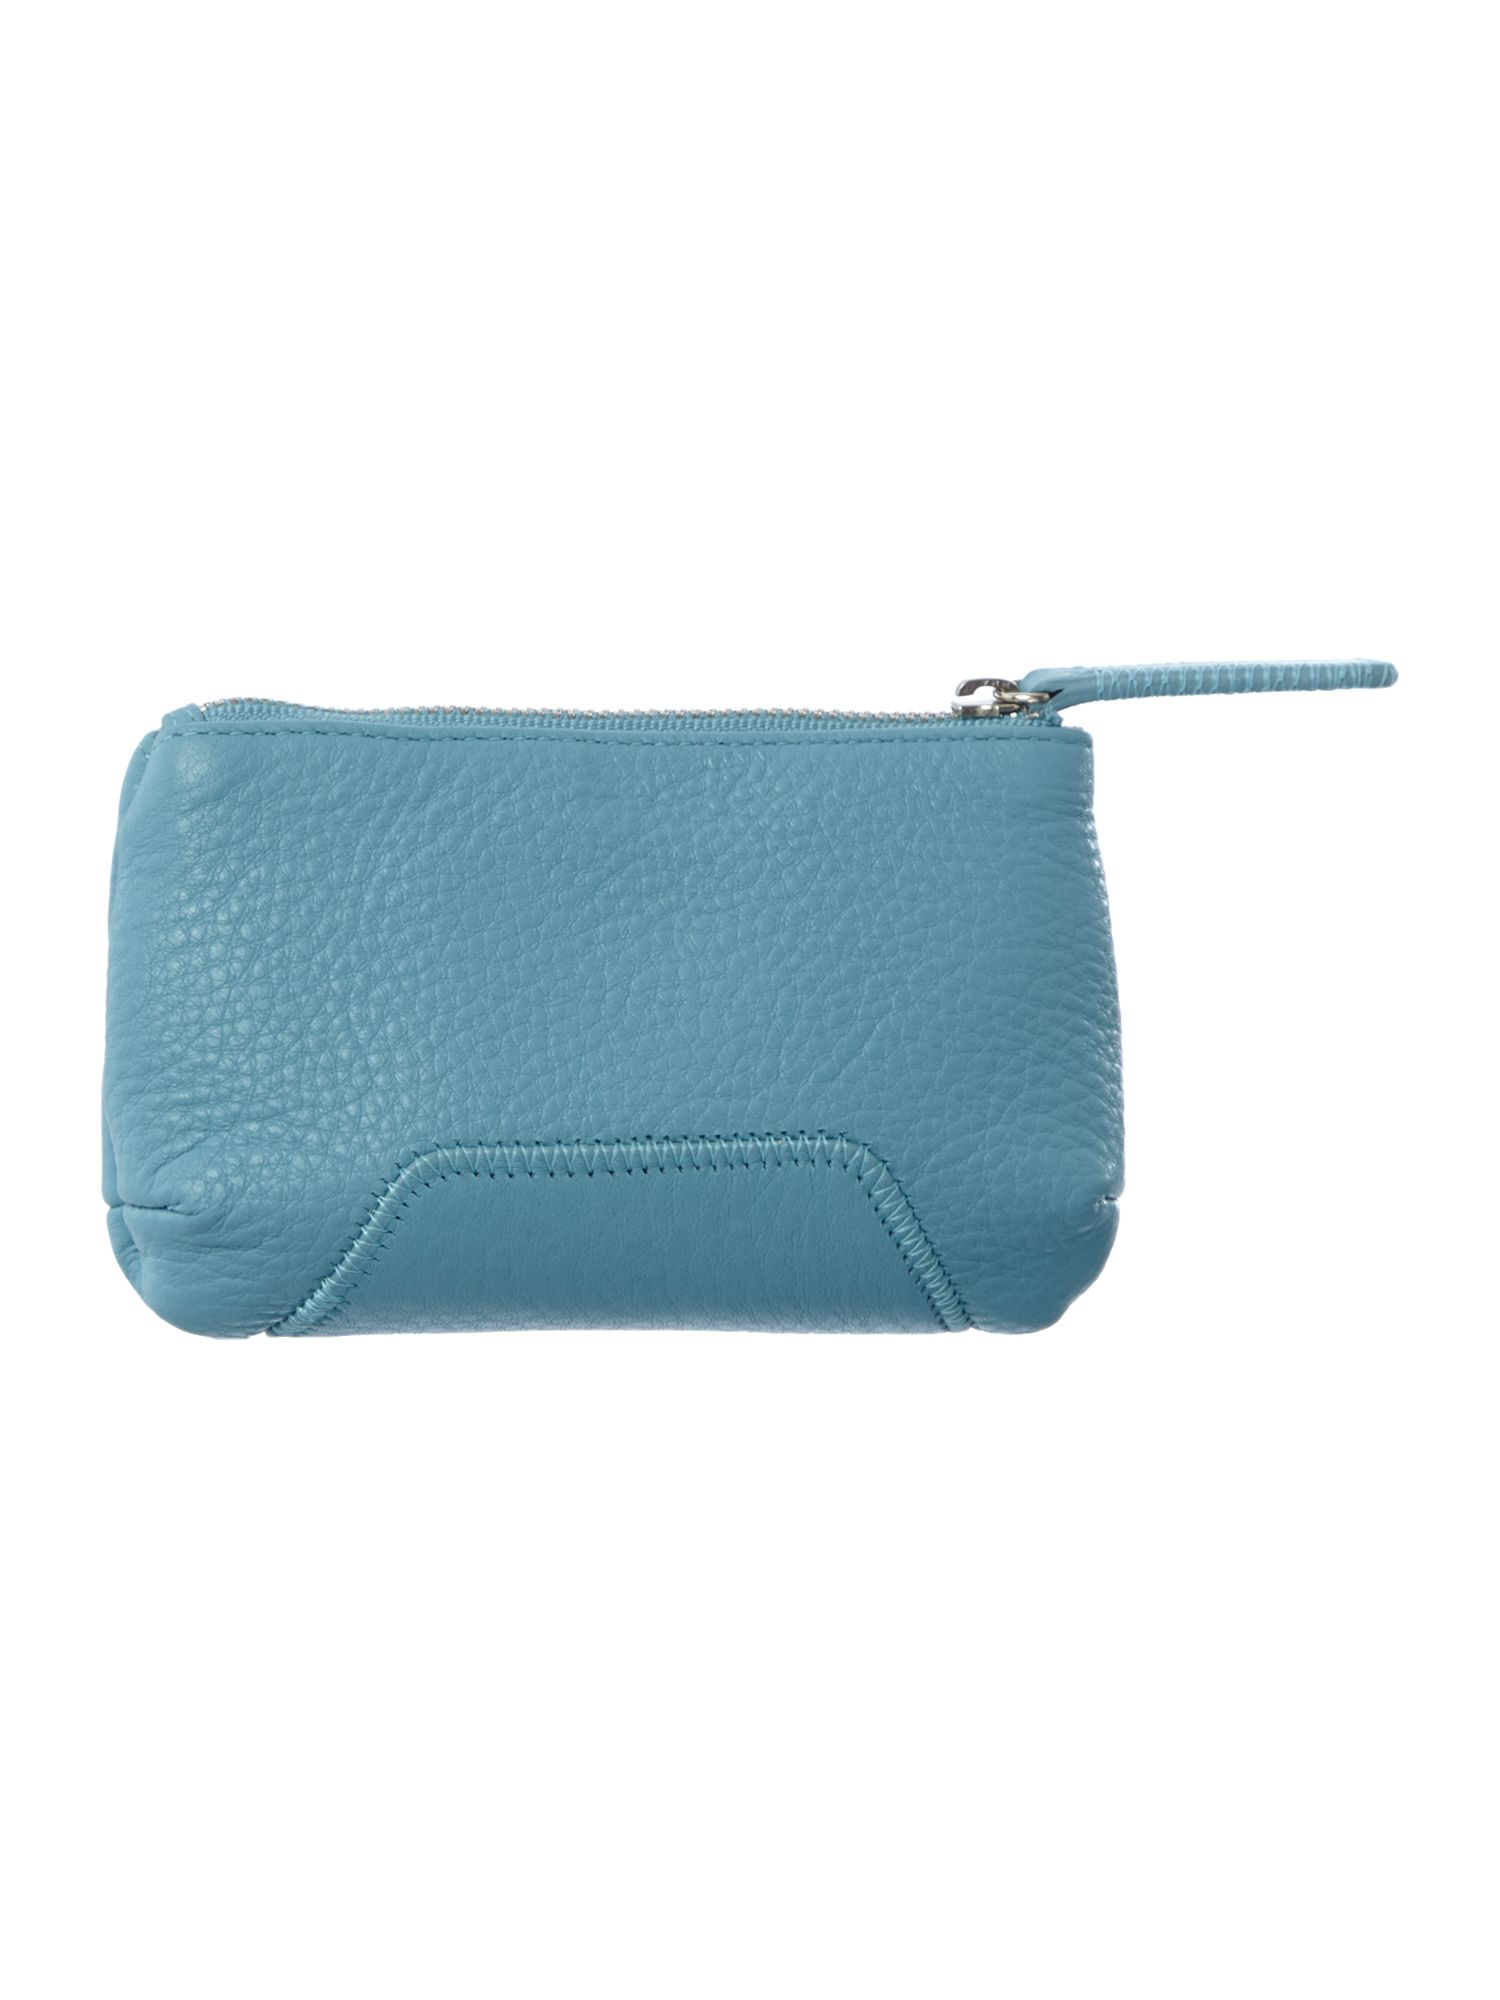 Blue medium zip pouch purse